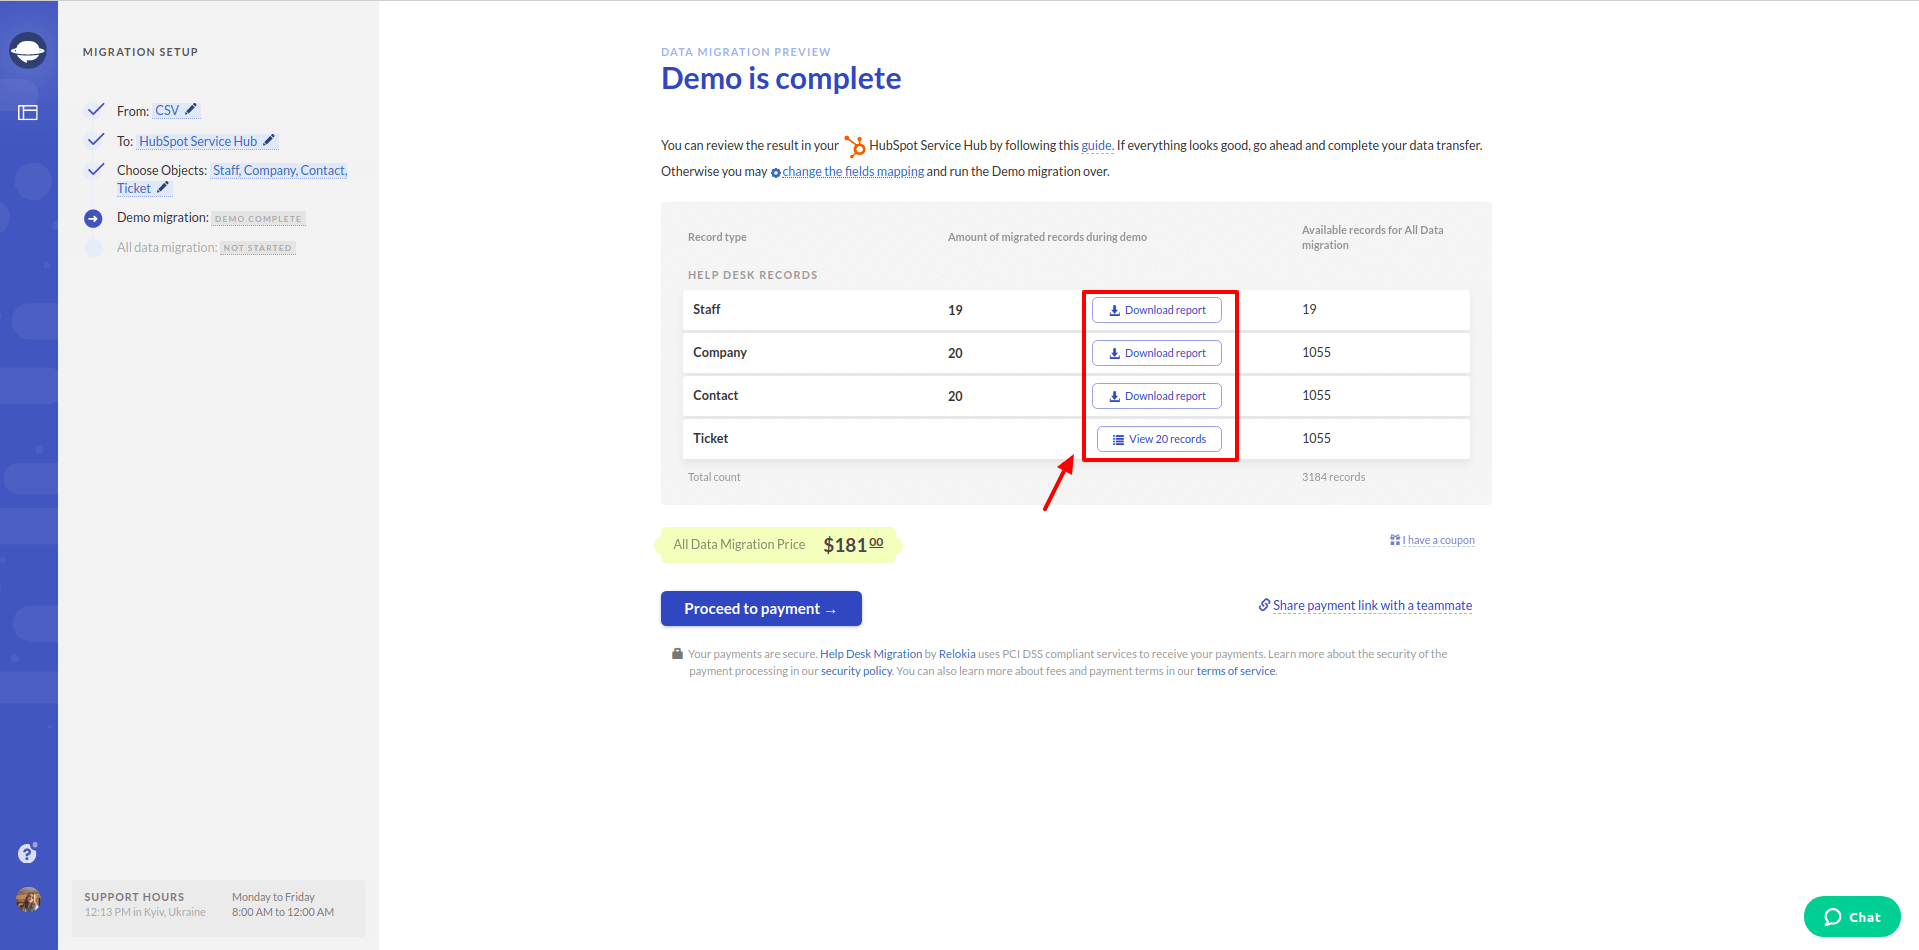 how to check the results of demo migration in hubspot service hub